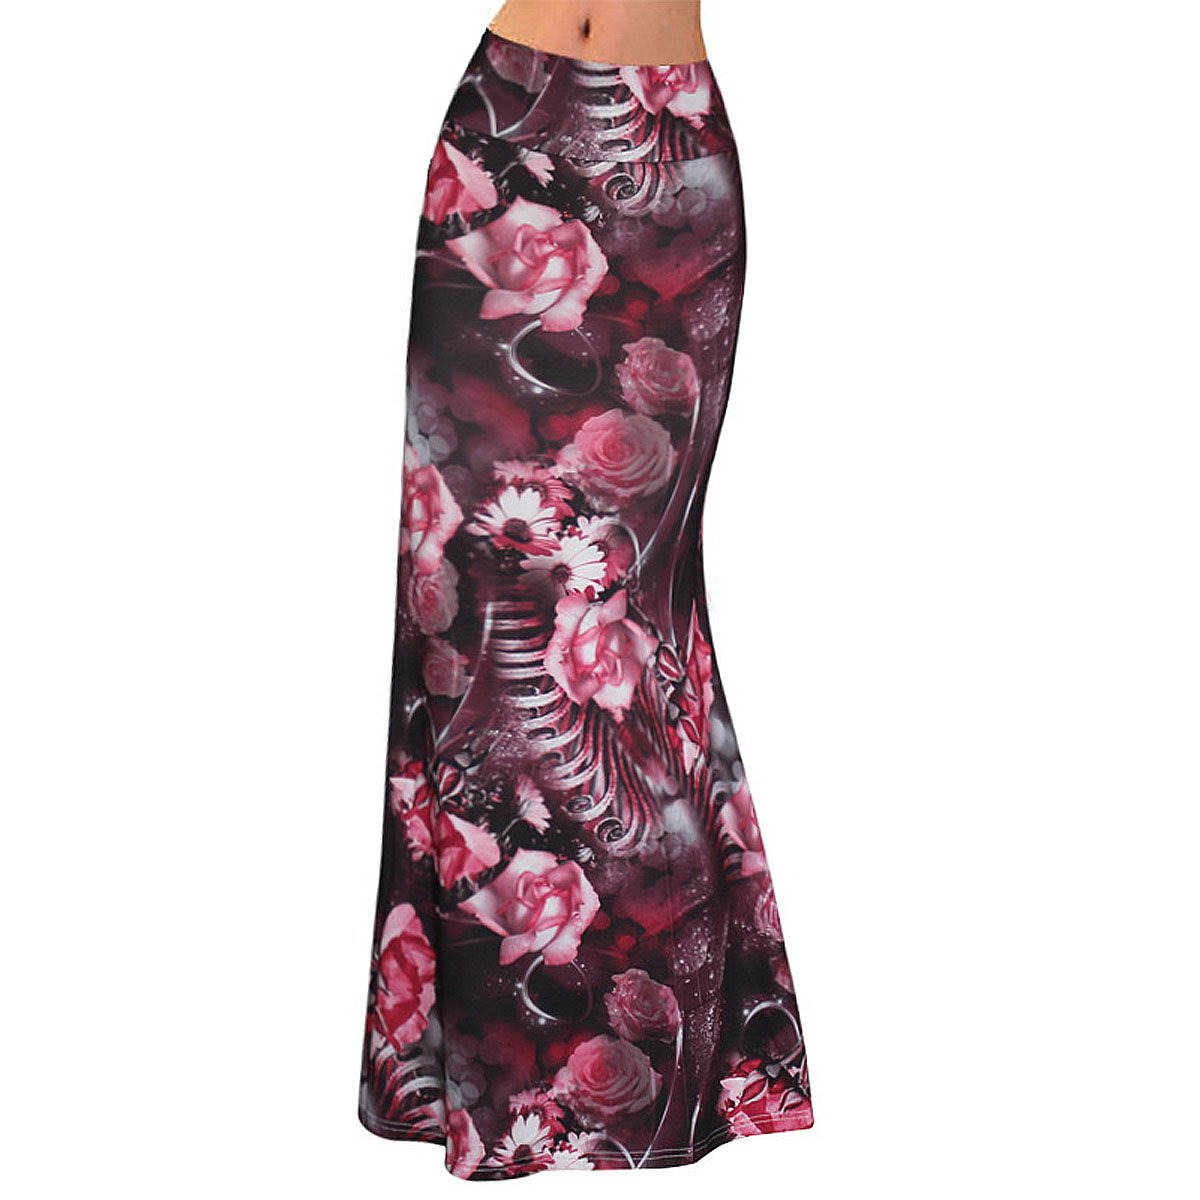 Sherry Skirt Womens High Waist Long Dress Multicolored Fitted Stretch Printed Maxi Skirt (Dark Red Floral,XL)